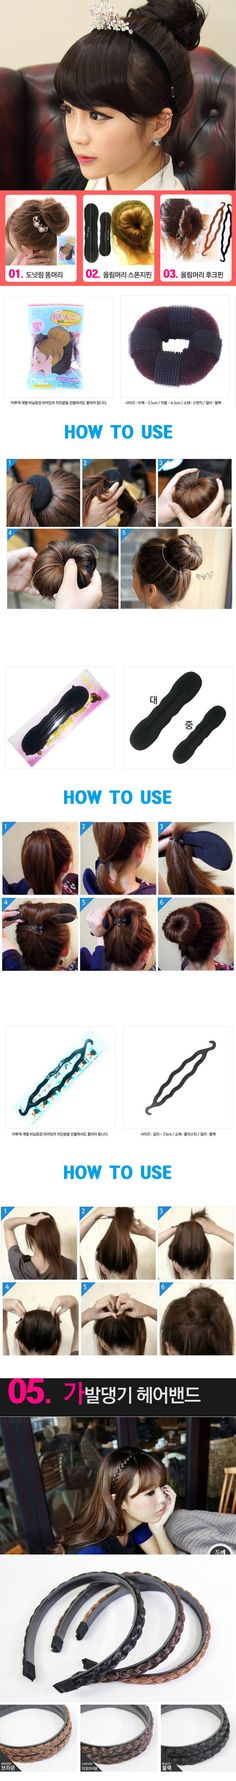 How to use different Asian bun makers